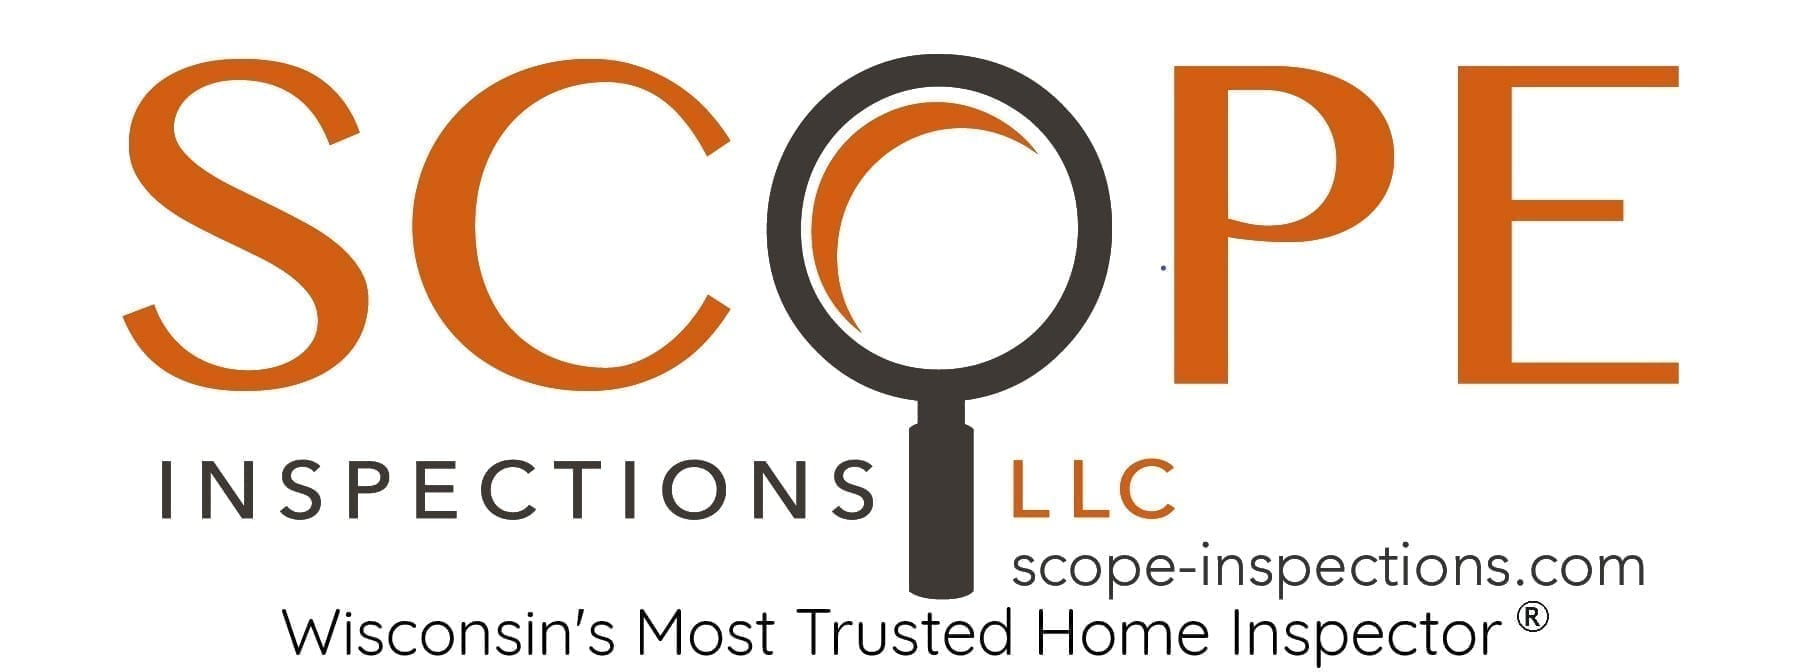 Wisconsin's most trusted Home Inspector